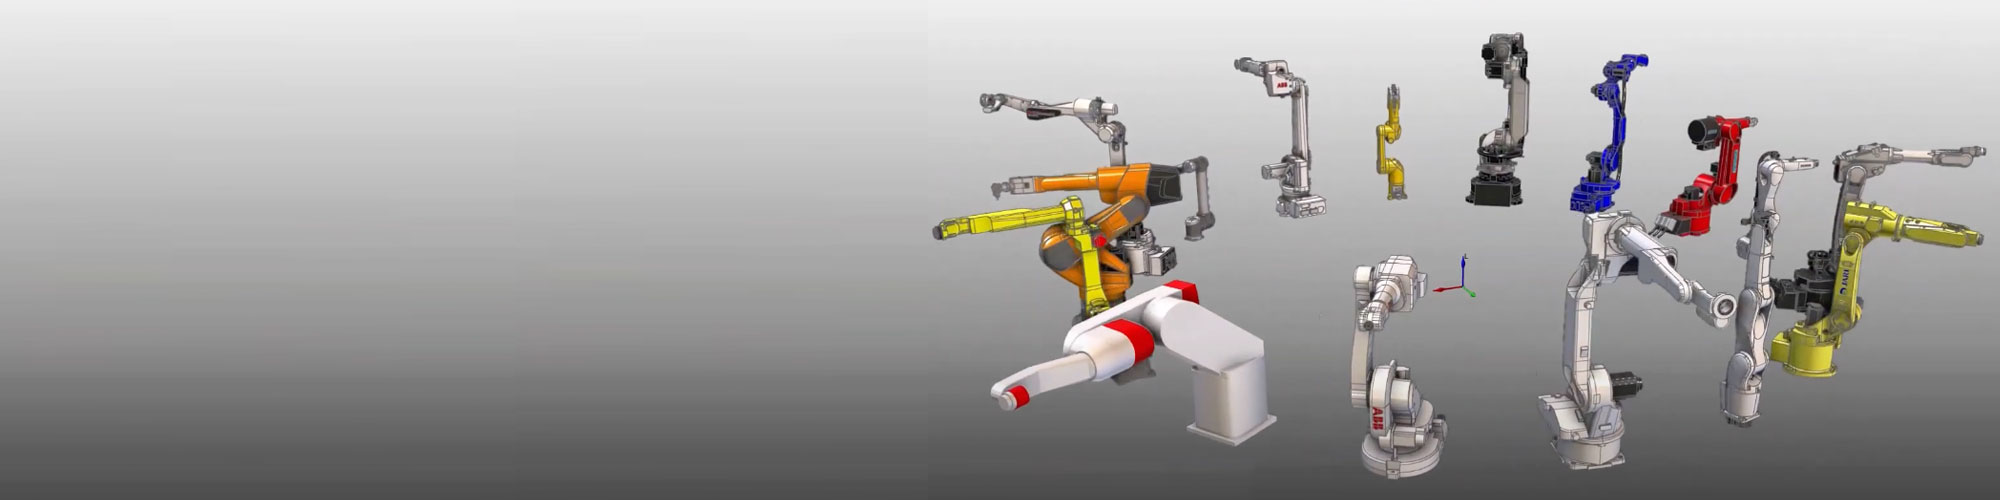 FASTSUITE supported robots, machine tools and Connector-SPS